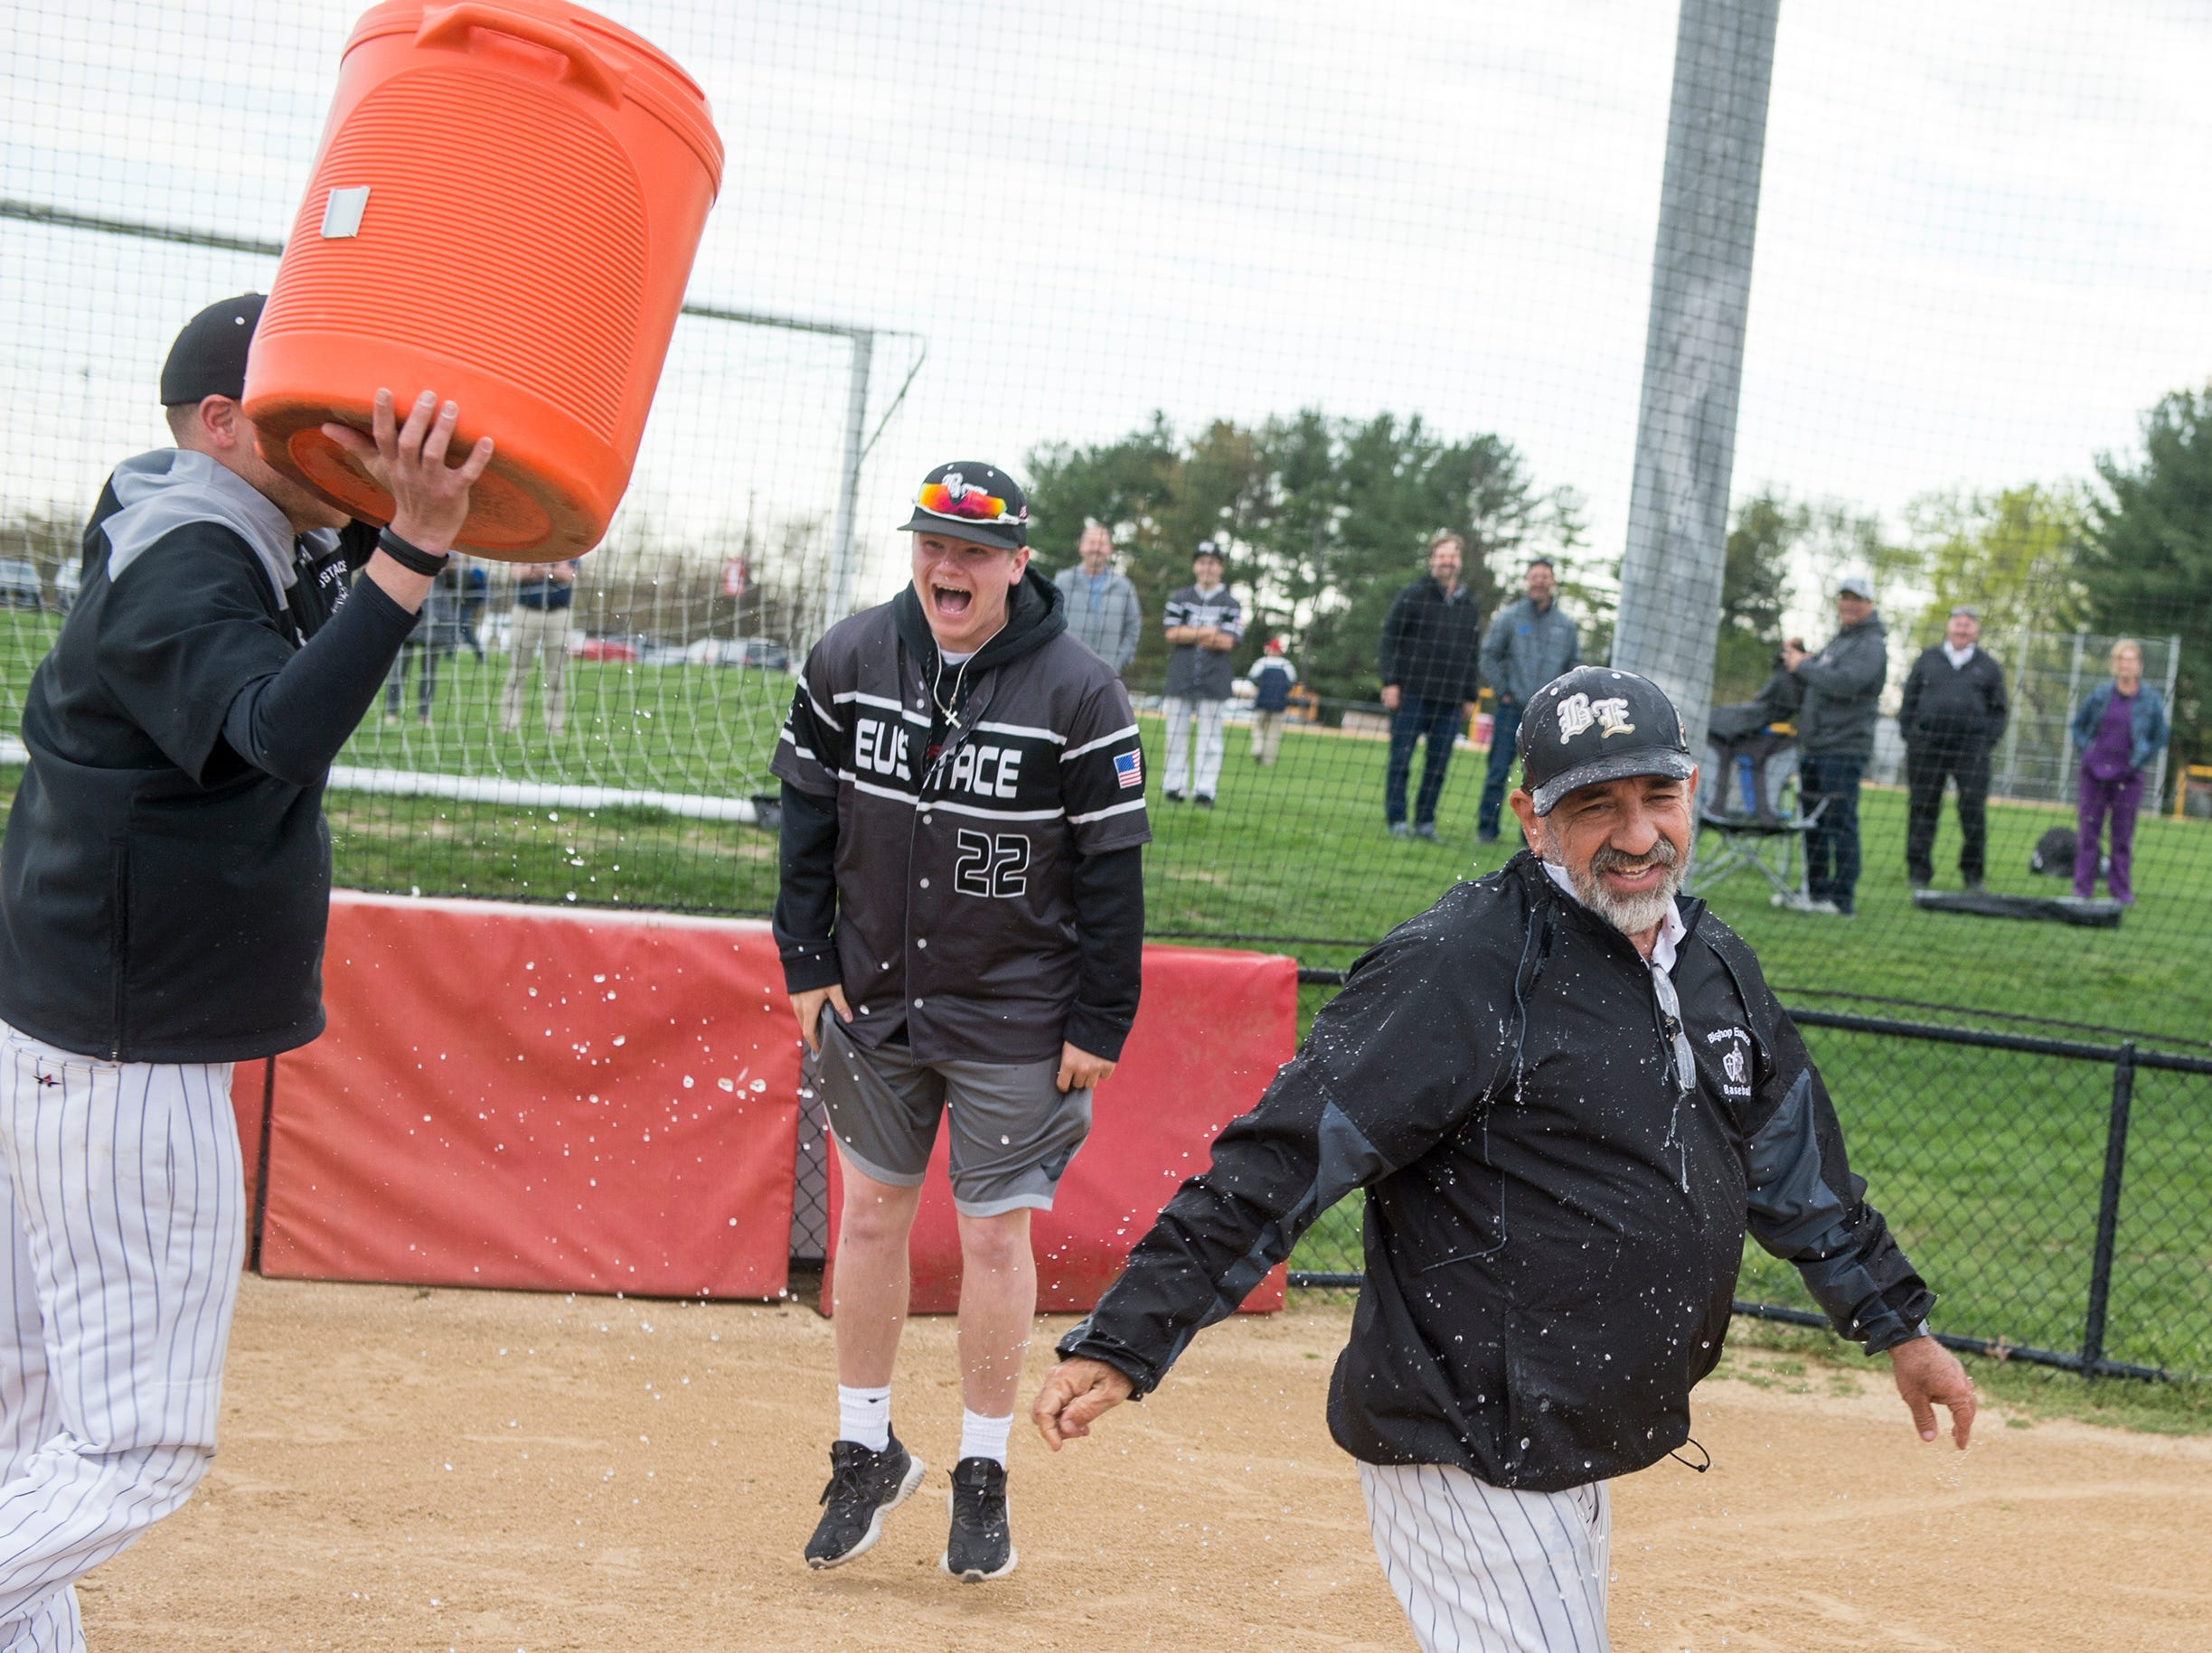 Bishop Eustace head coach Sam Tropiano, right, can't escape the cooler following a 5-3 win over Lenape, earning his 673rd win and a new South Jersey record Tuesday, April 16, 2019 at Lenape High School in Medford, N.J.